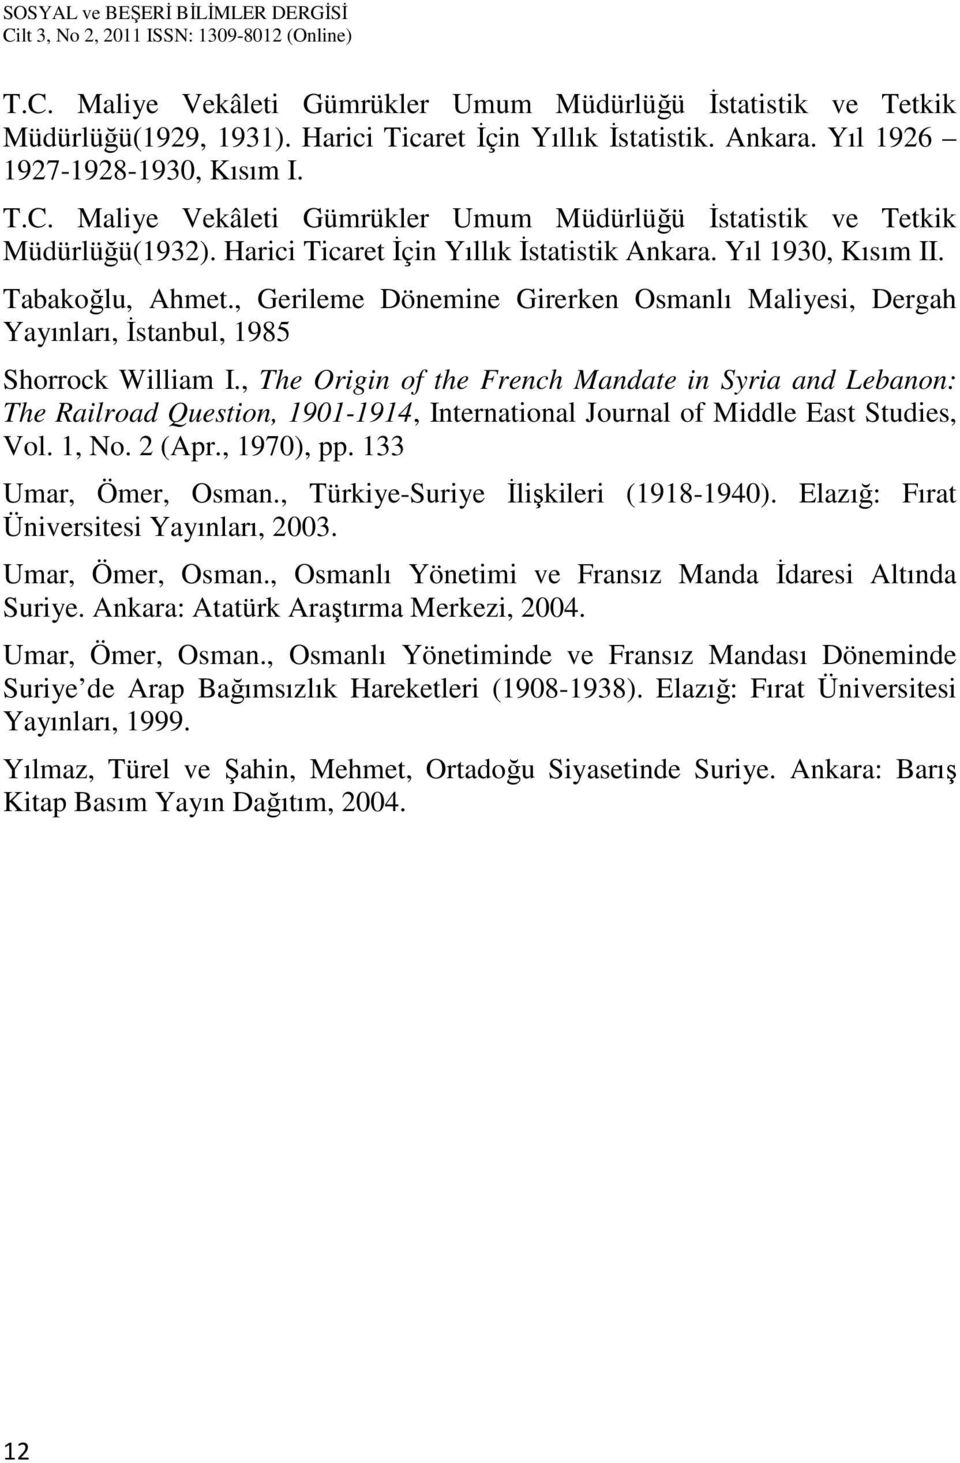 , The Origin of the French Mandate in Syria and Lebanon: The Railroad Question, 1901-1914, International Journal of Middle East Studies, Vol. 1, No. 2 (Apr., 1970), pp. 133 Umar, Ömer, Osman.